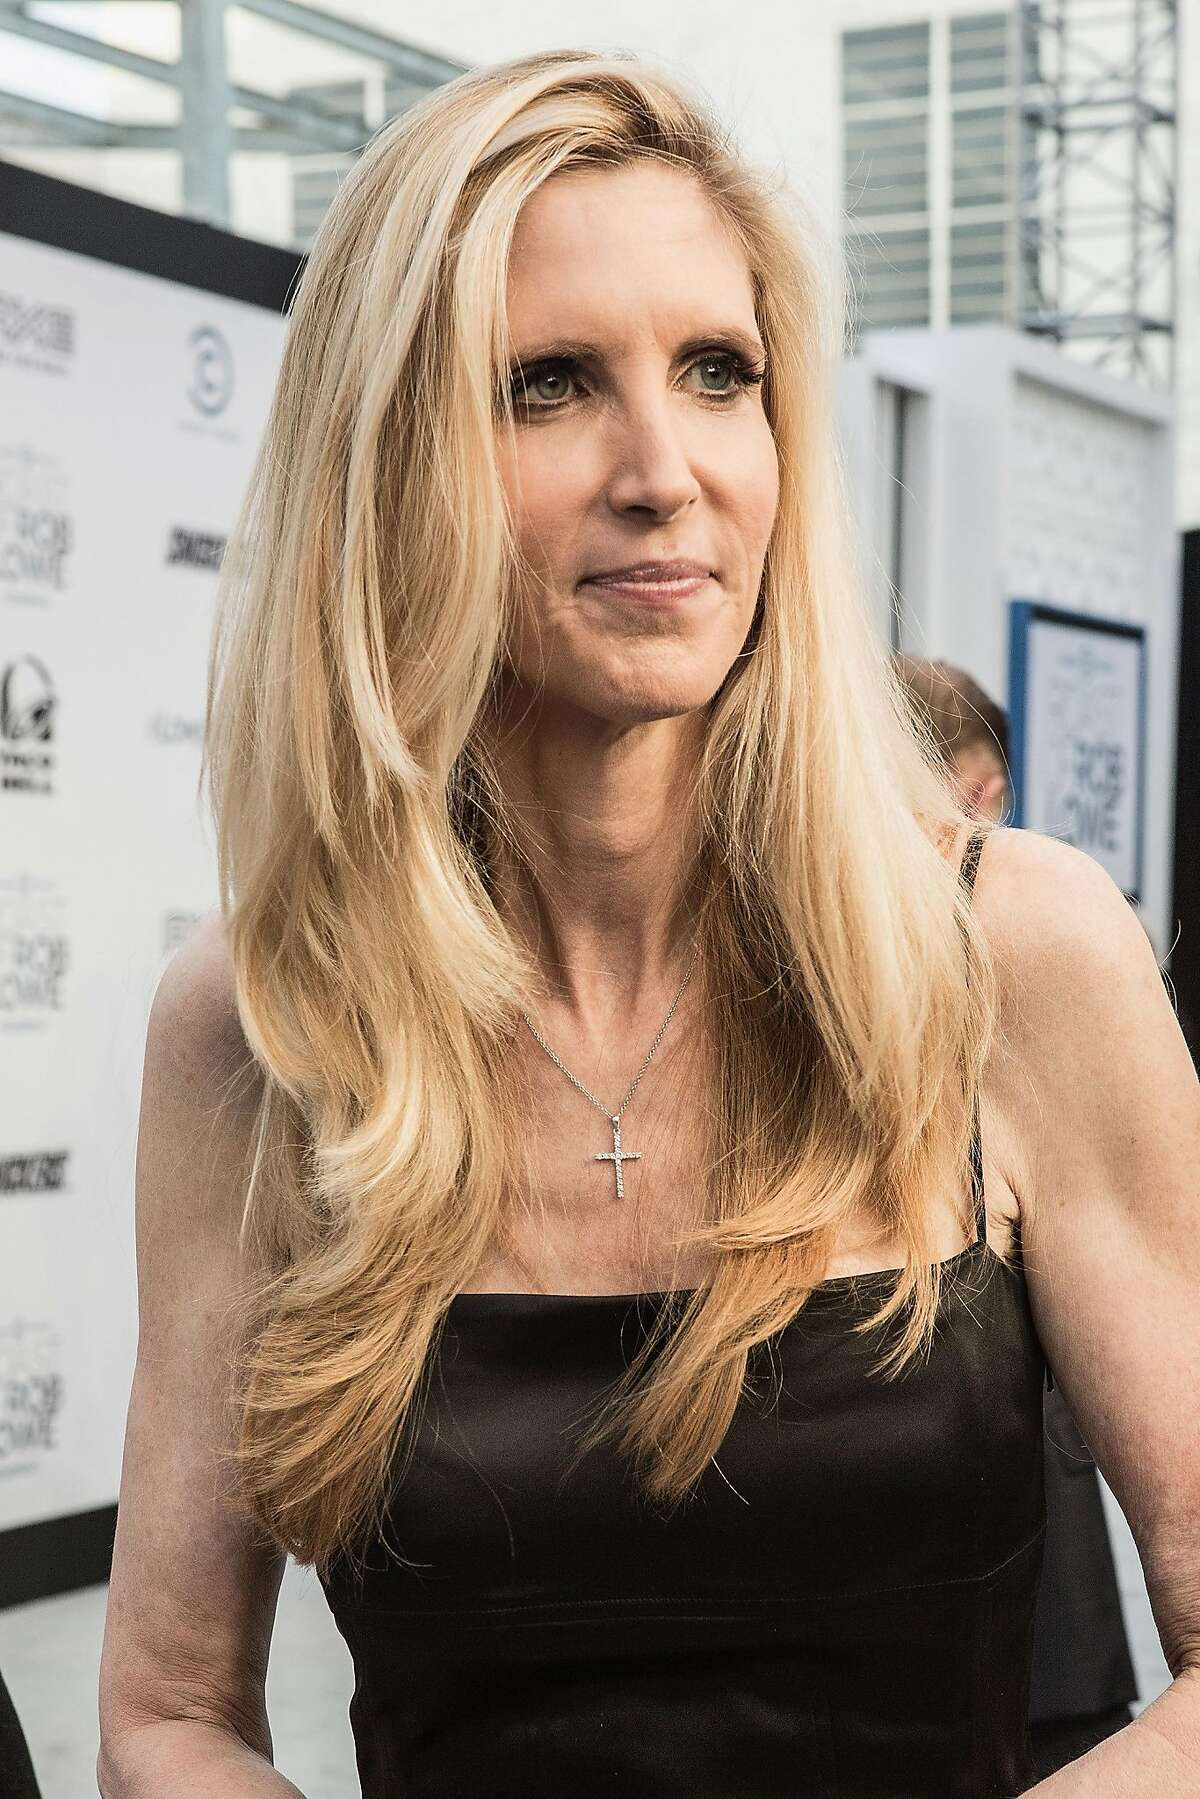 LOS ANGELES, CA - AUGUST 27: Ann Coulter attends the Comedy Central roast of Rob Lowe held at Sony Studios on August 27, 2016 in Los Angeles, California. (Photo by Harmony Gerber/WireImage)